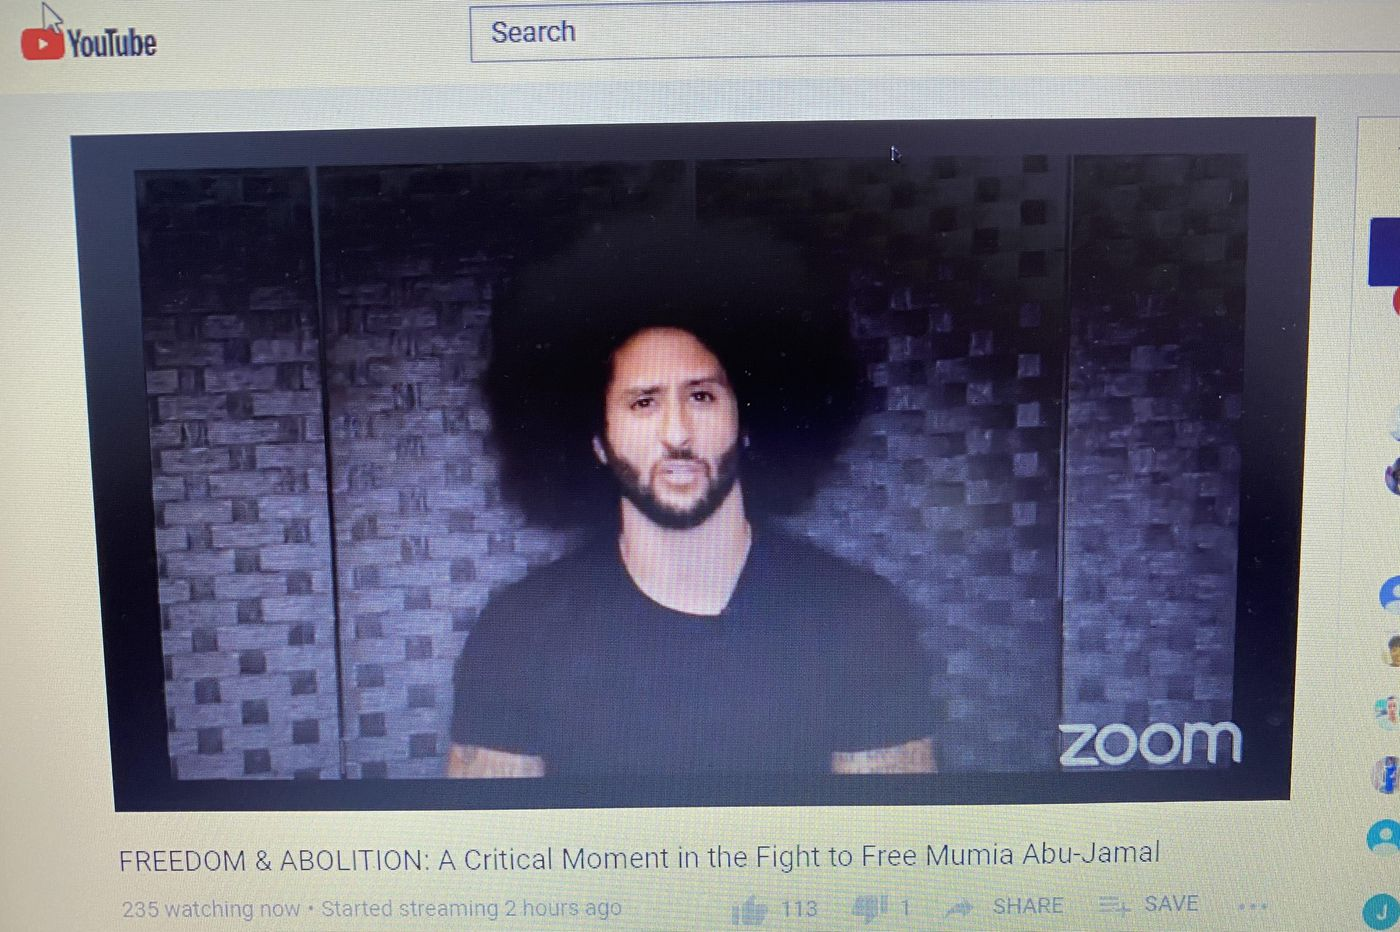 Colin Kaepernick calls on law enforcement authorities to 'Free Mumia'